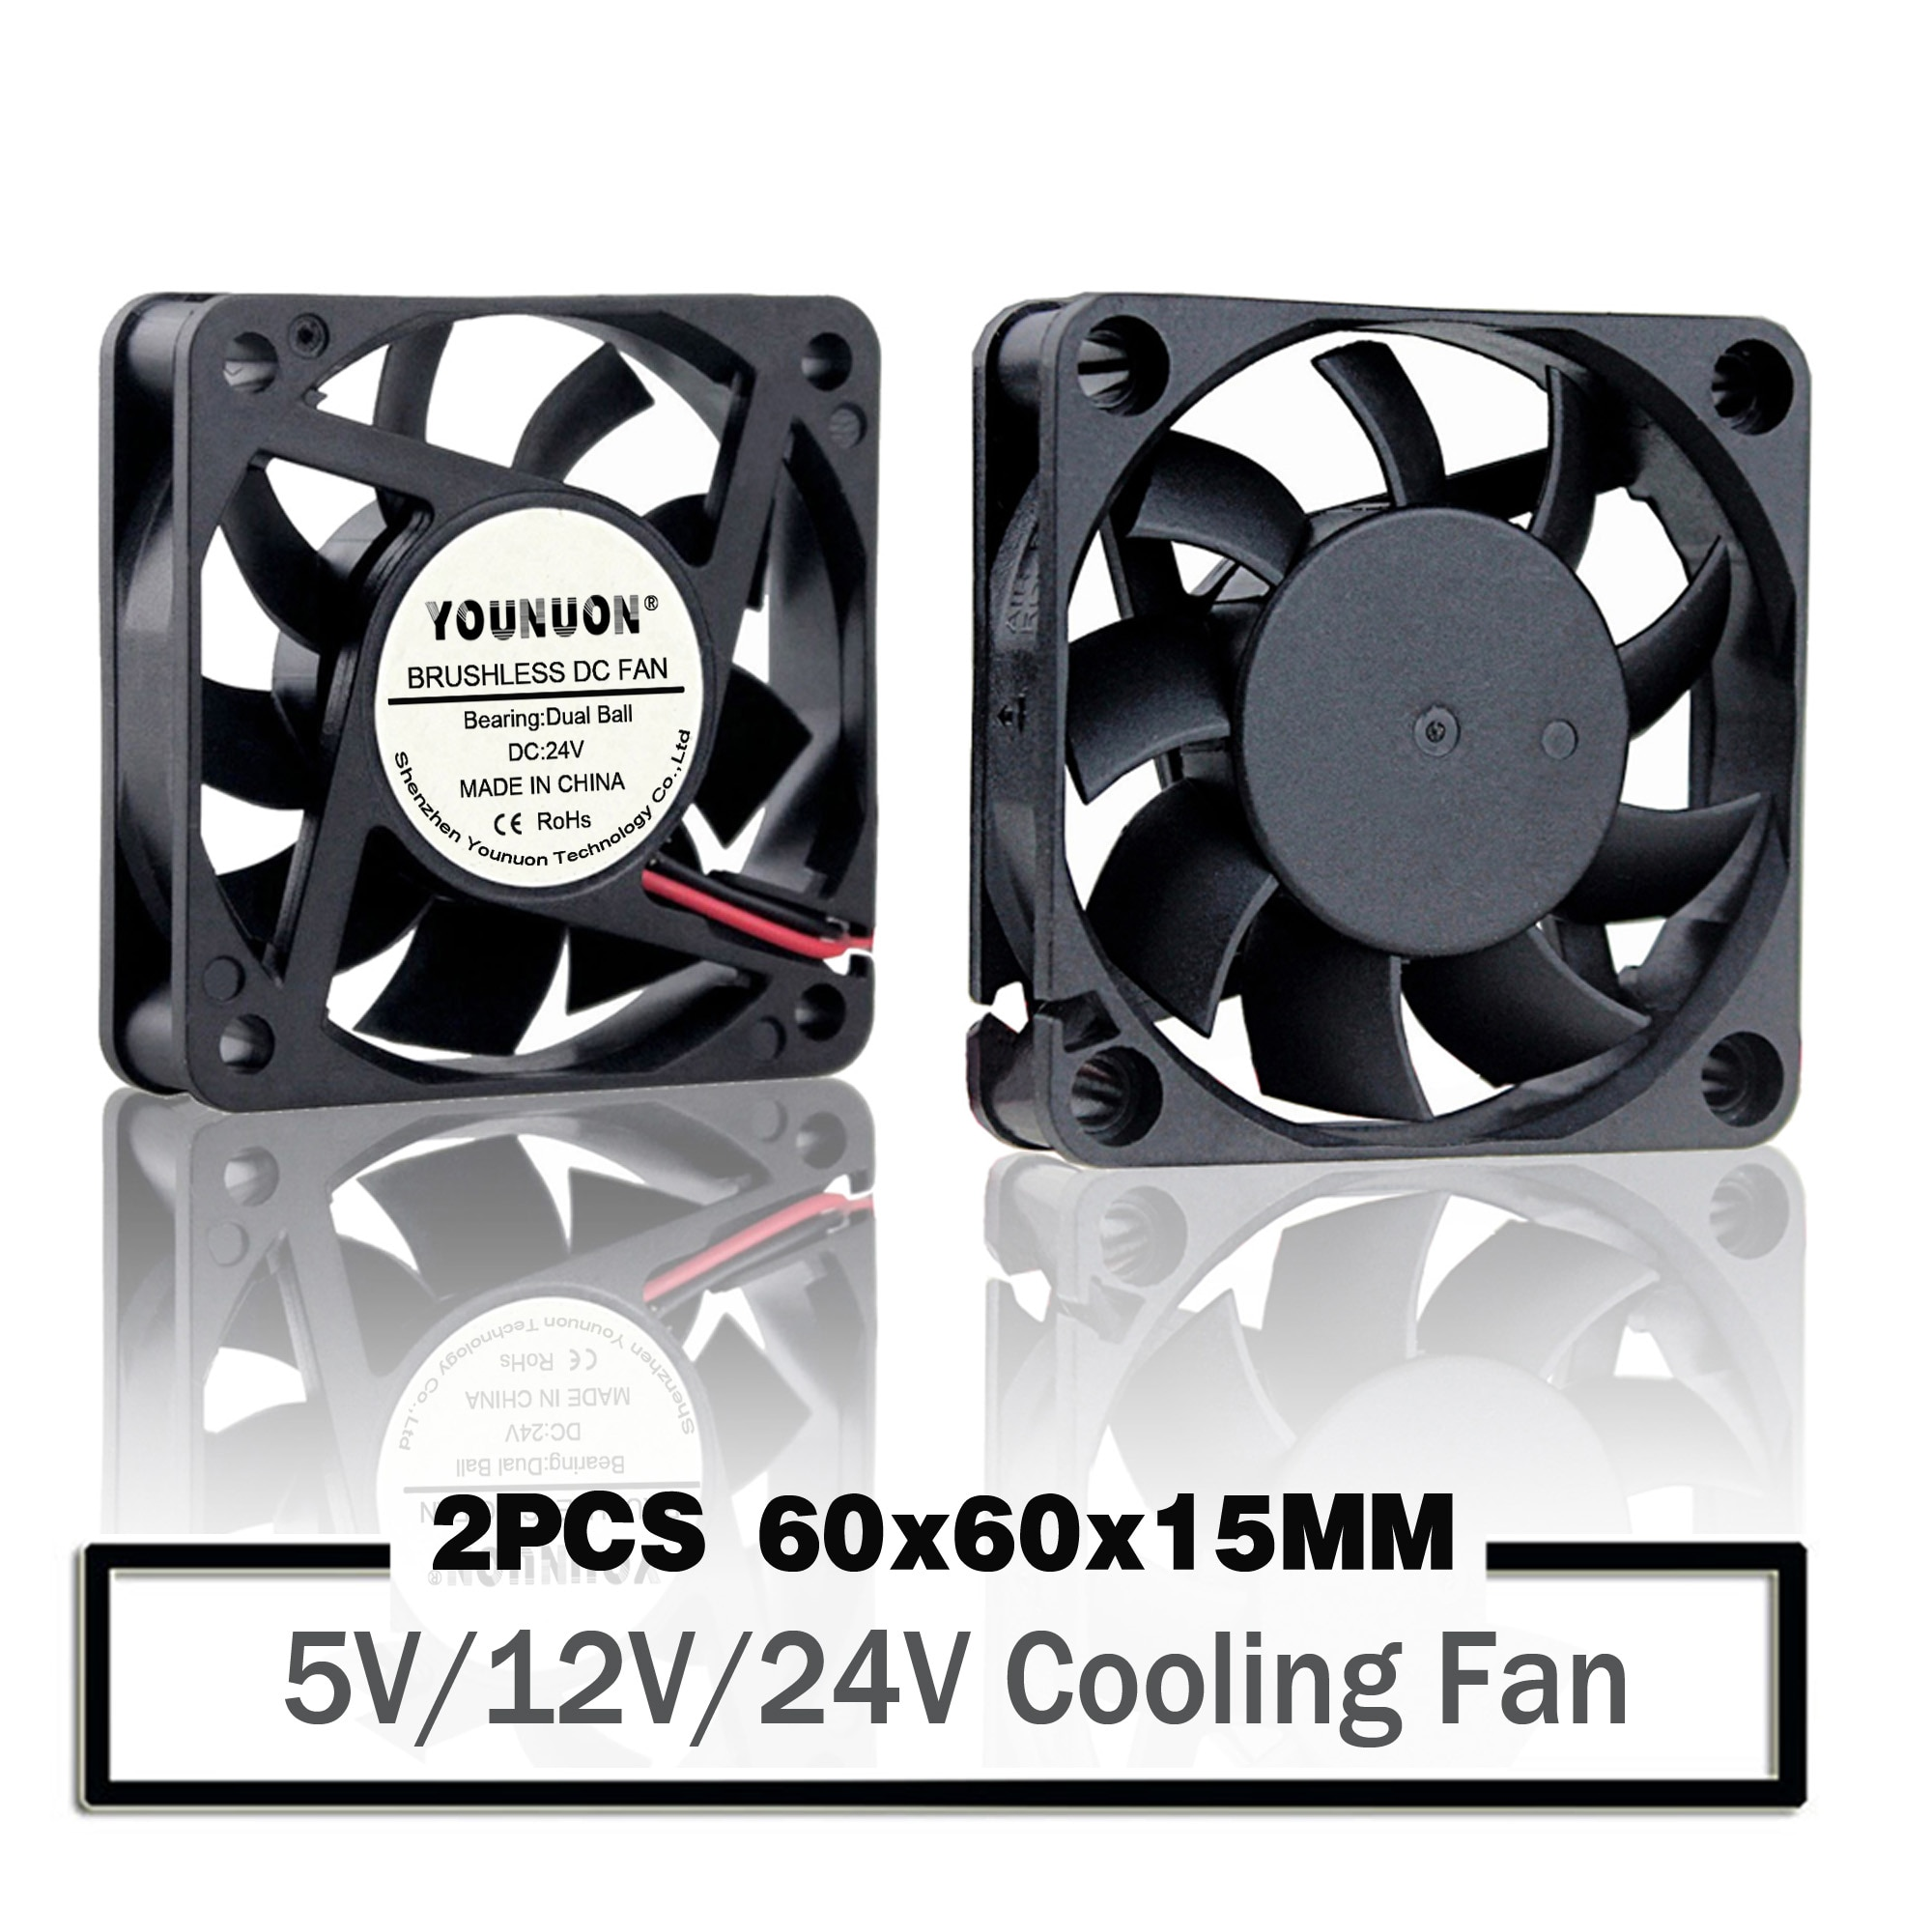 2 Pieces 60mm 6015 5V 12V 24V Brushless USB 2PIN 3PIN DC Cooler Fan 60x60x15mm 6015 6cm For Computer PC CPU Case Cooling 5pcs lot gdstime 6015 2pin 60mm 60 60x15mm 12v dc computer cpu cooling fan 6cm cooler